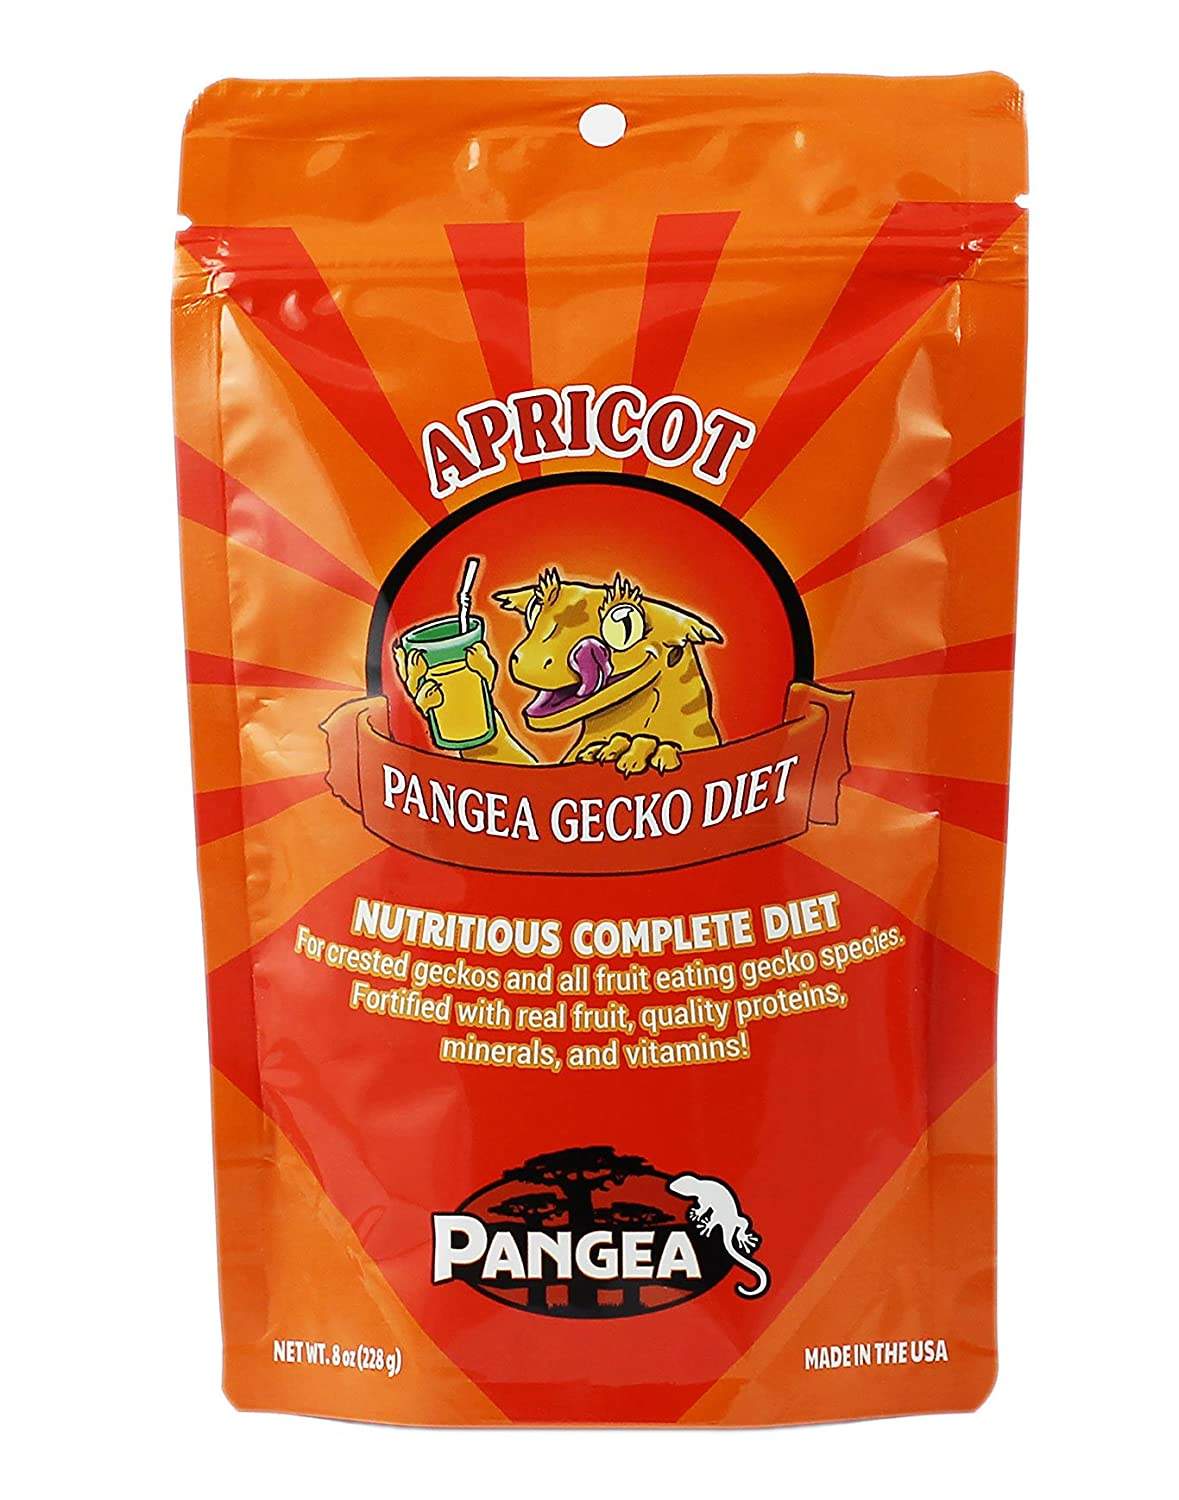 Banana/Apricot Pangea Fruit Mix Complete Crested Gecko Food 1 lb